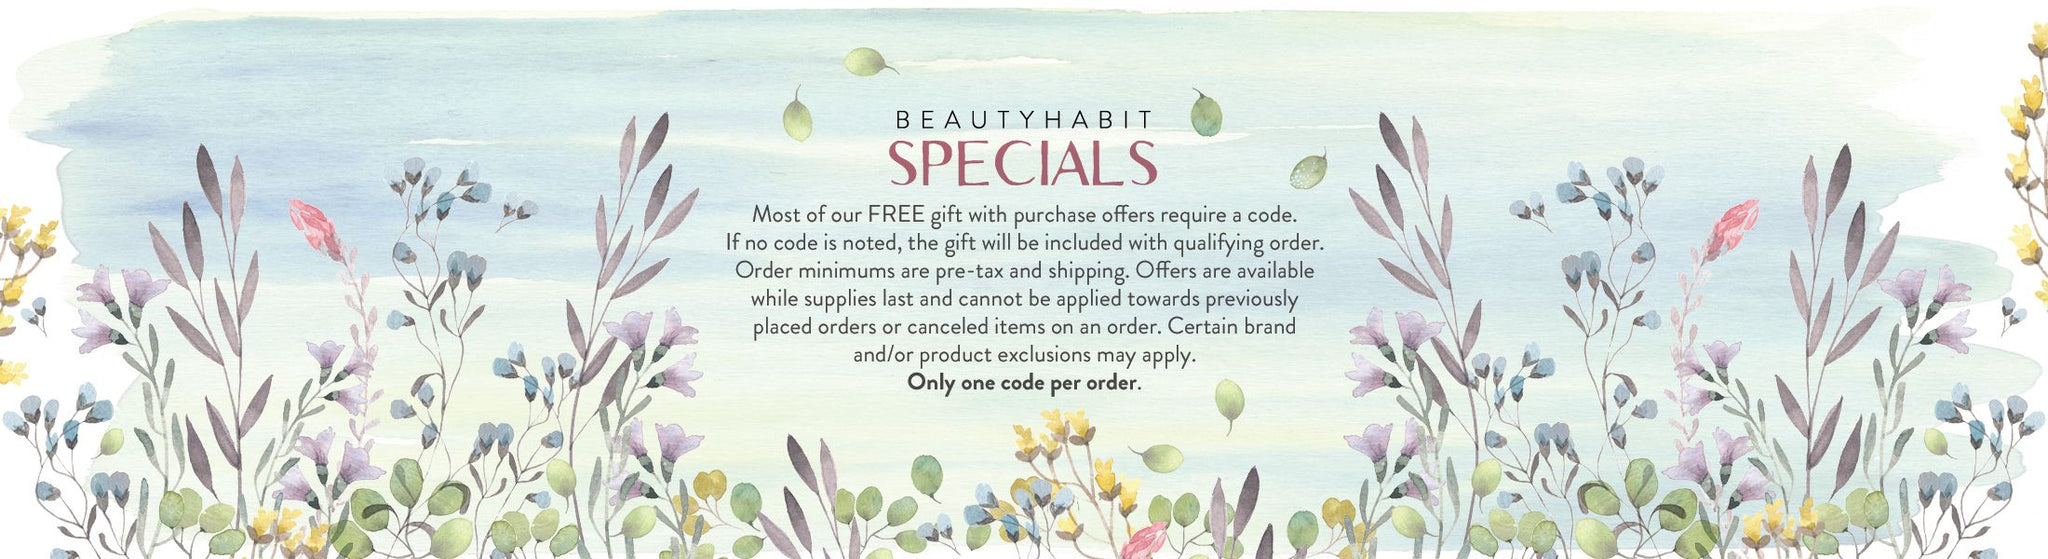 Special offers and free gifts from Beautyhabit